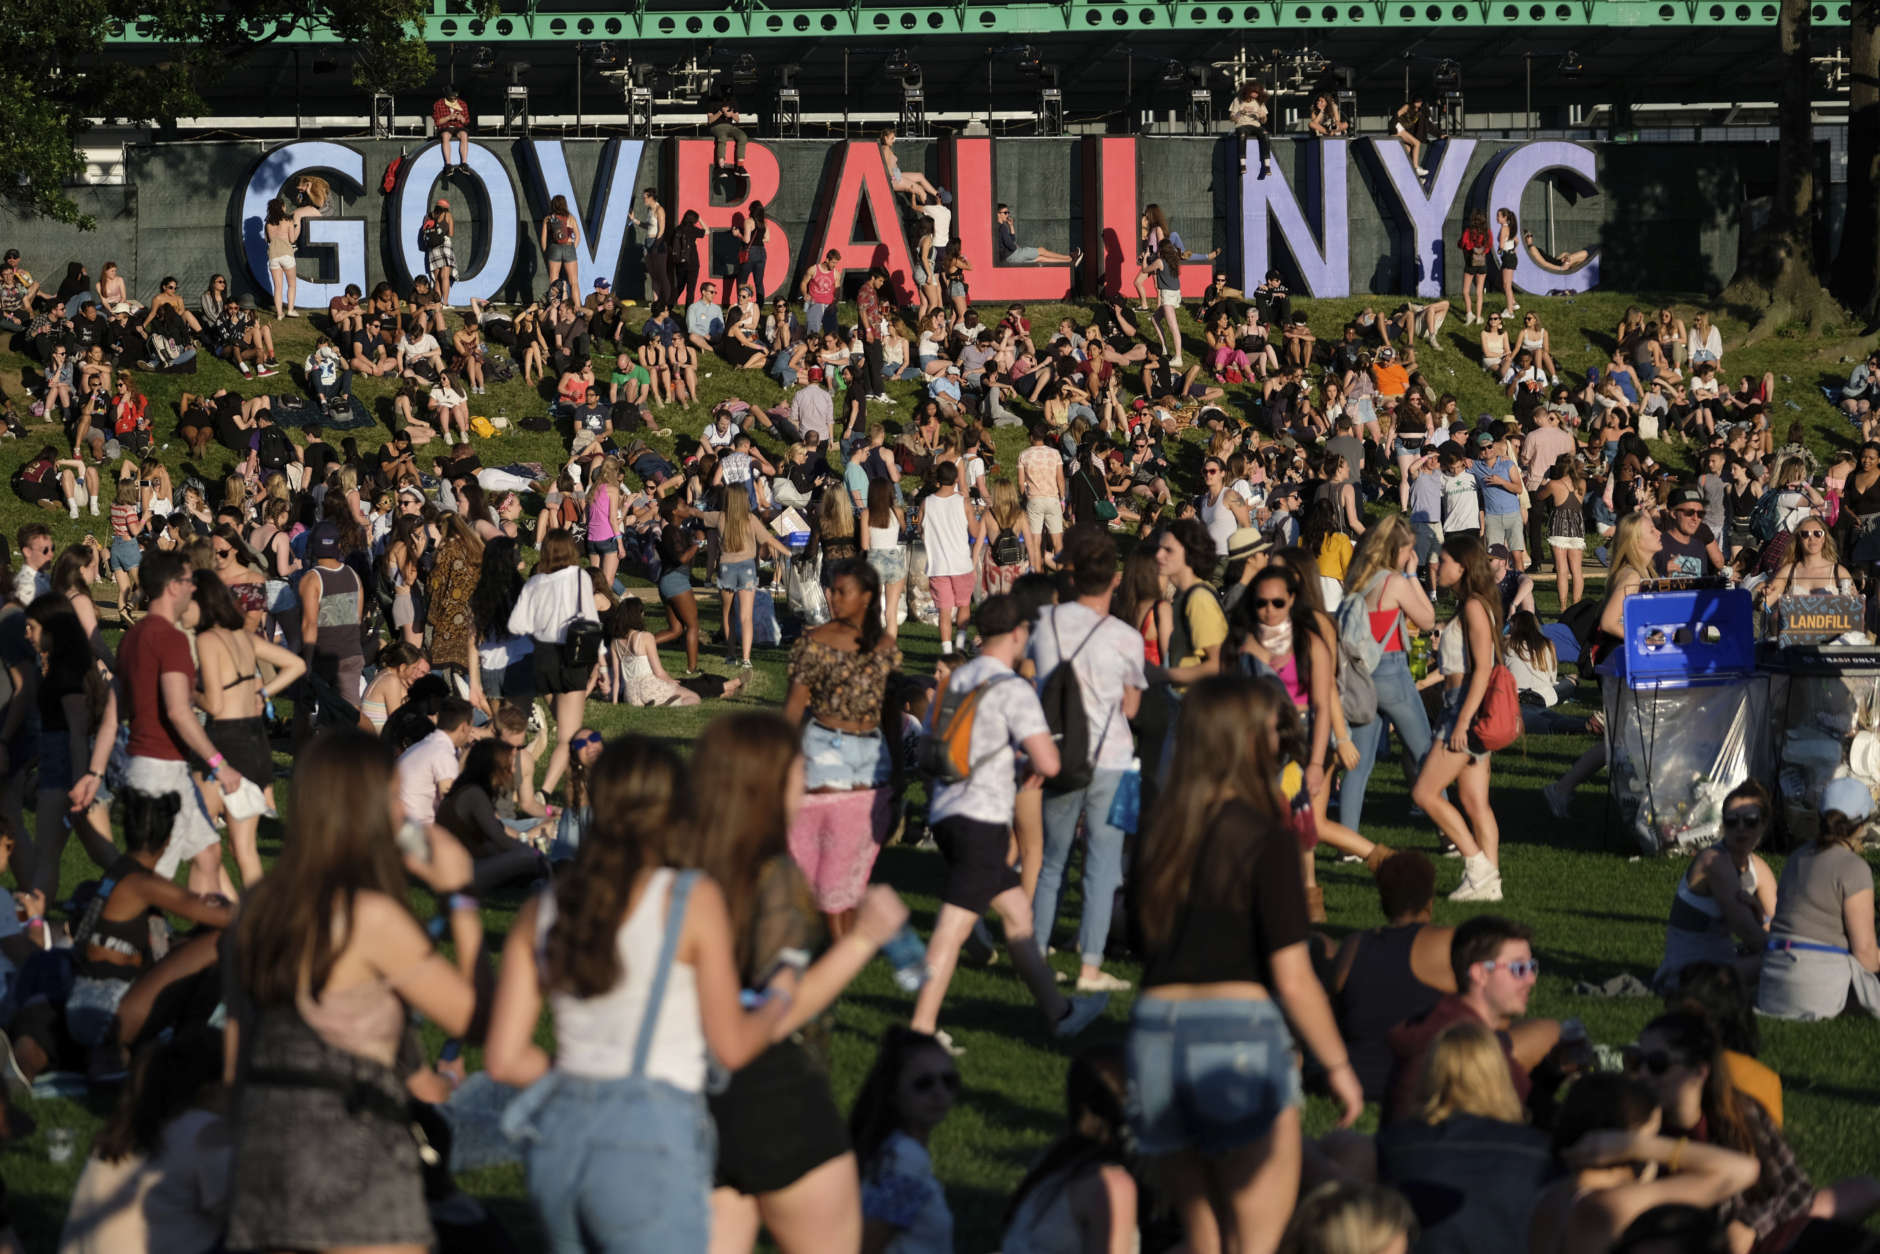 Concert goers are seen on day one of the Governors Ball Music Festival on Friday, June 2, 2017, in New York. (Photo by Charles Sykes/Invision/AP)